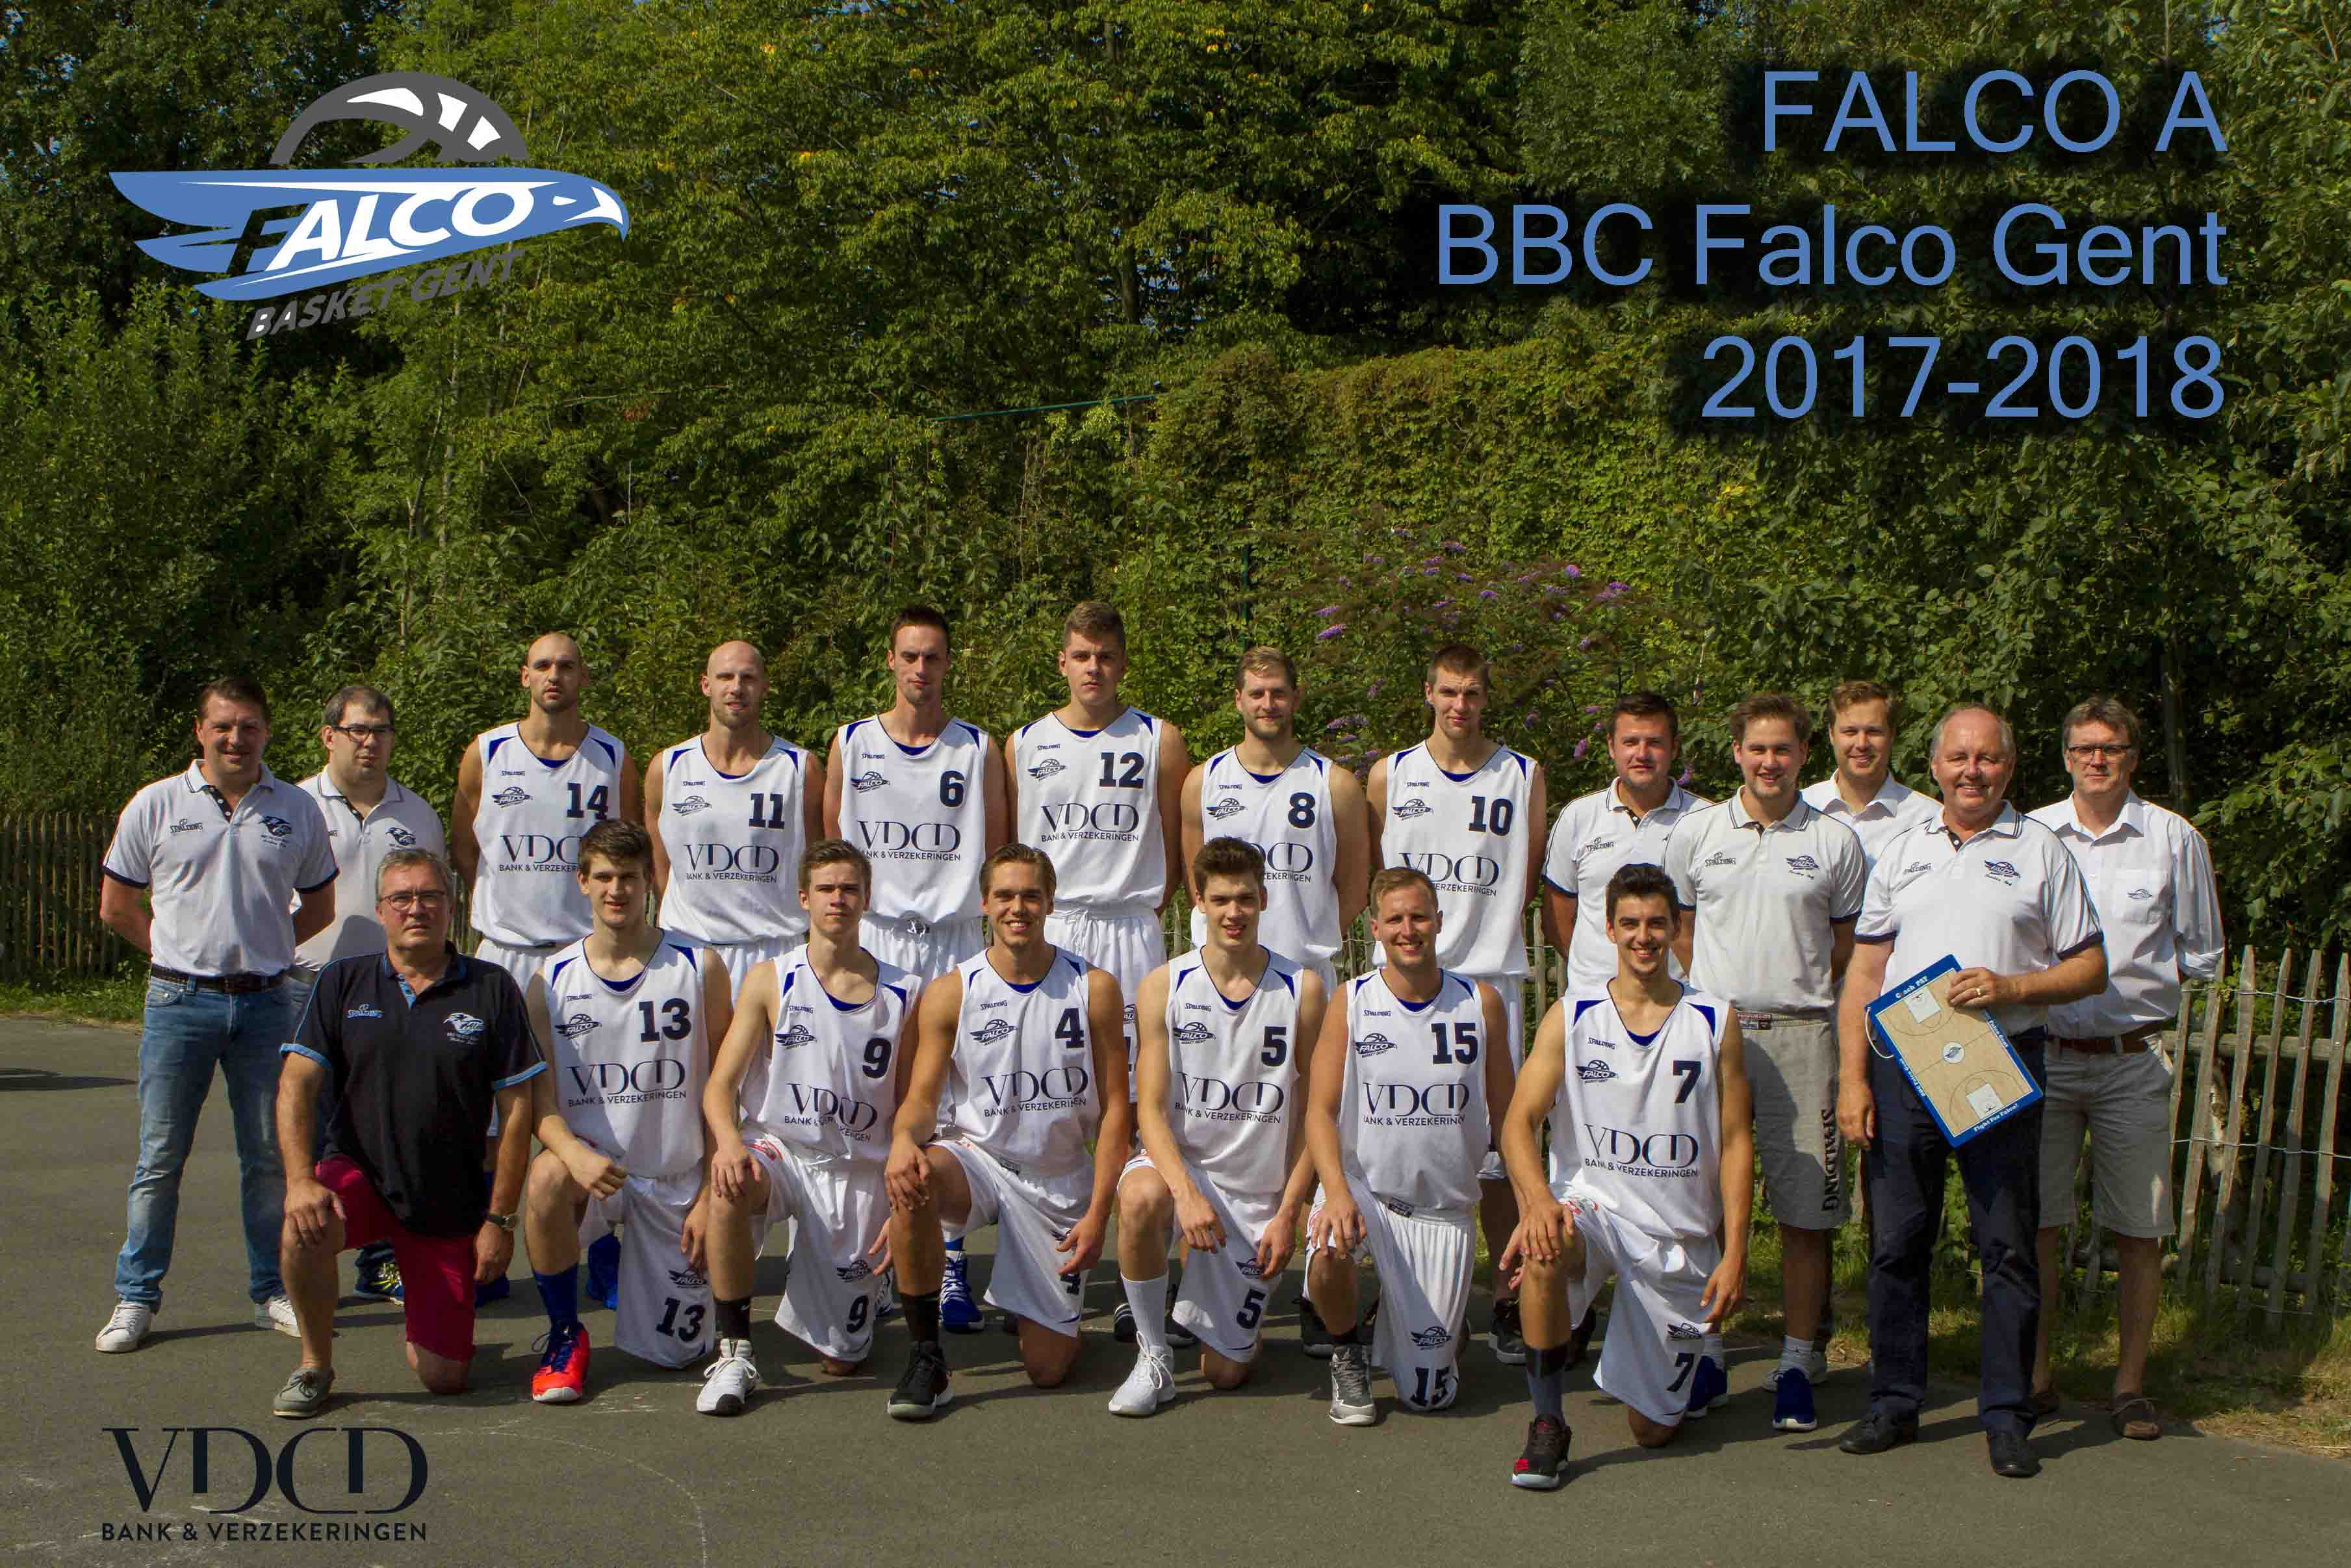 BBC Falco Gent team